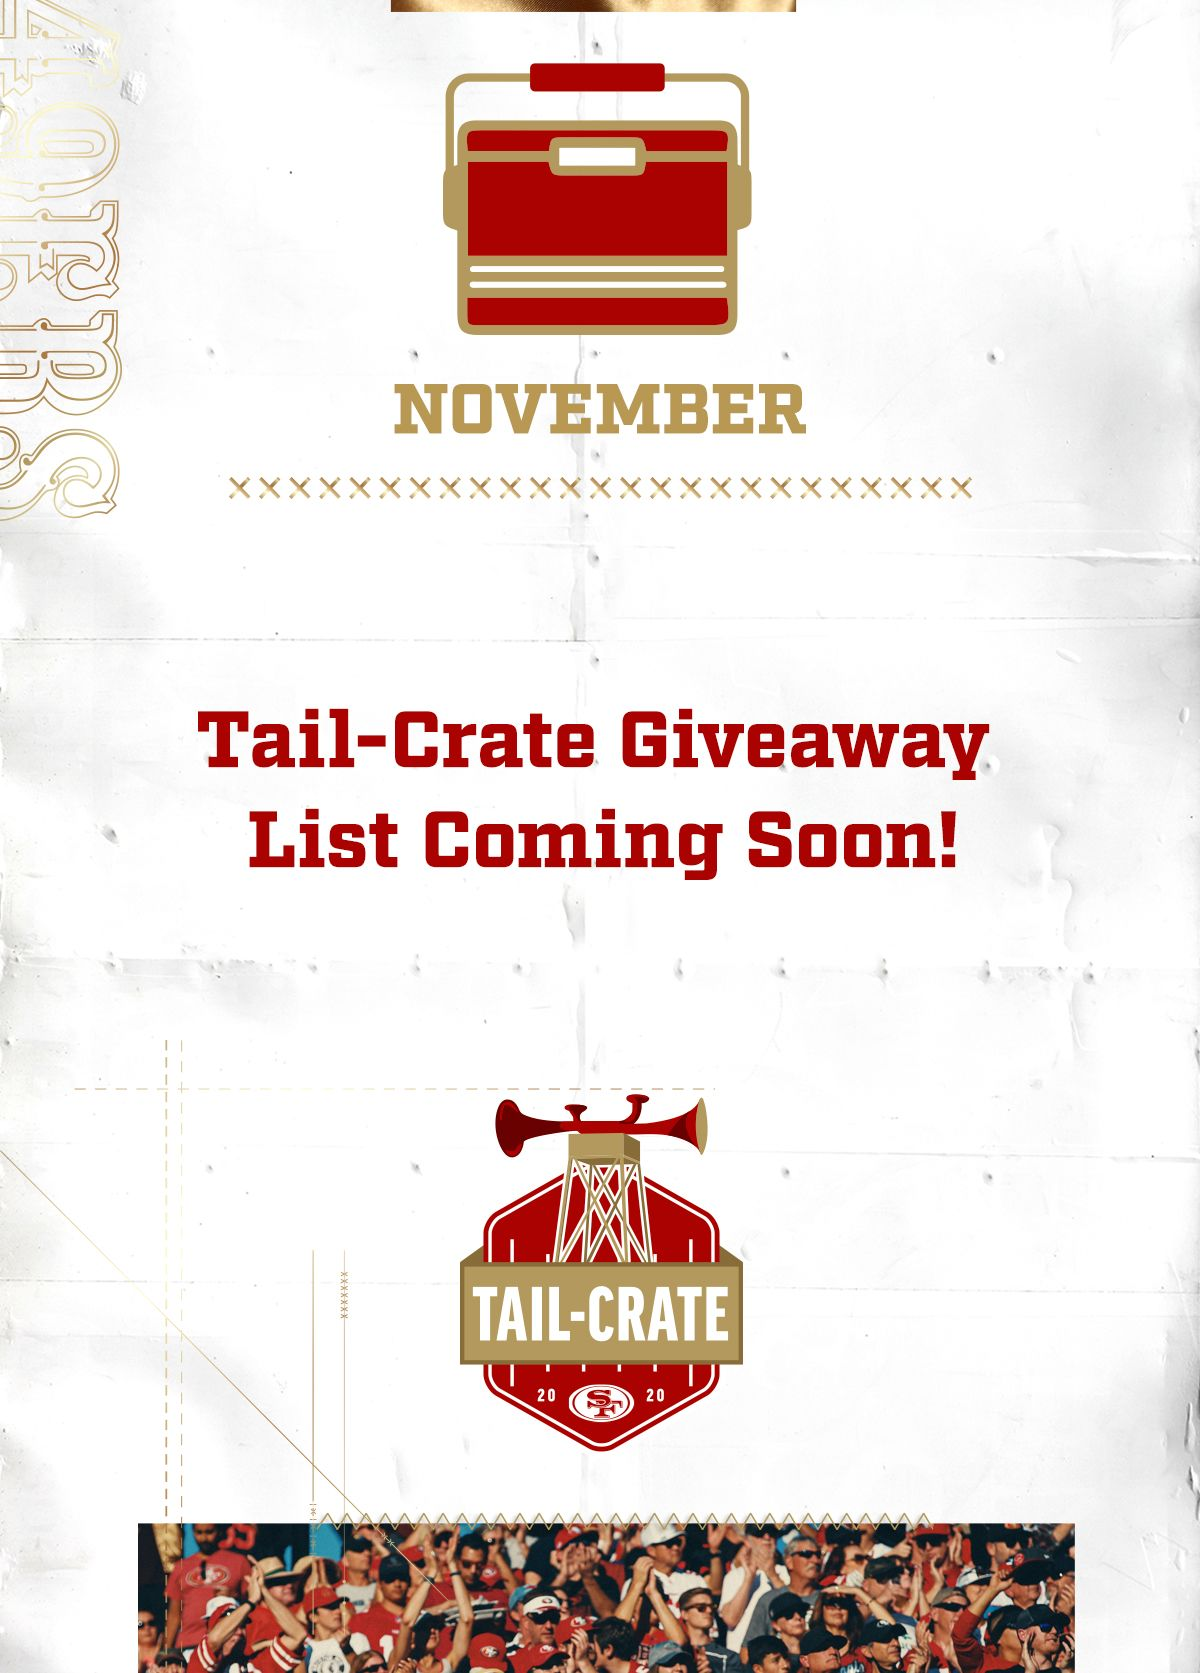 Tail-Crate Web Assets-NOV-4x5_